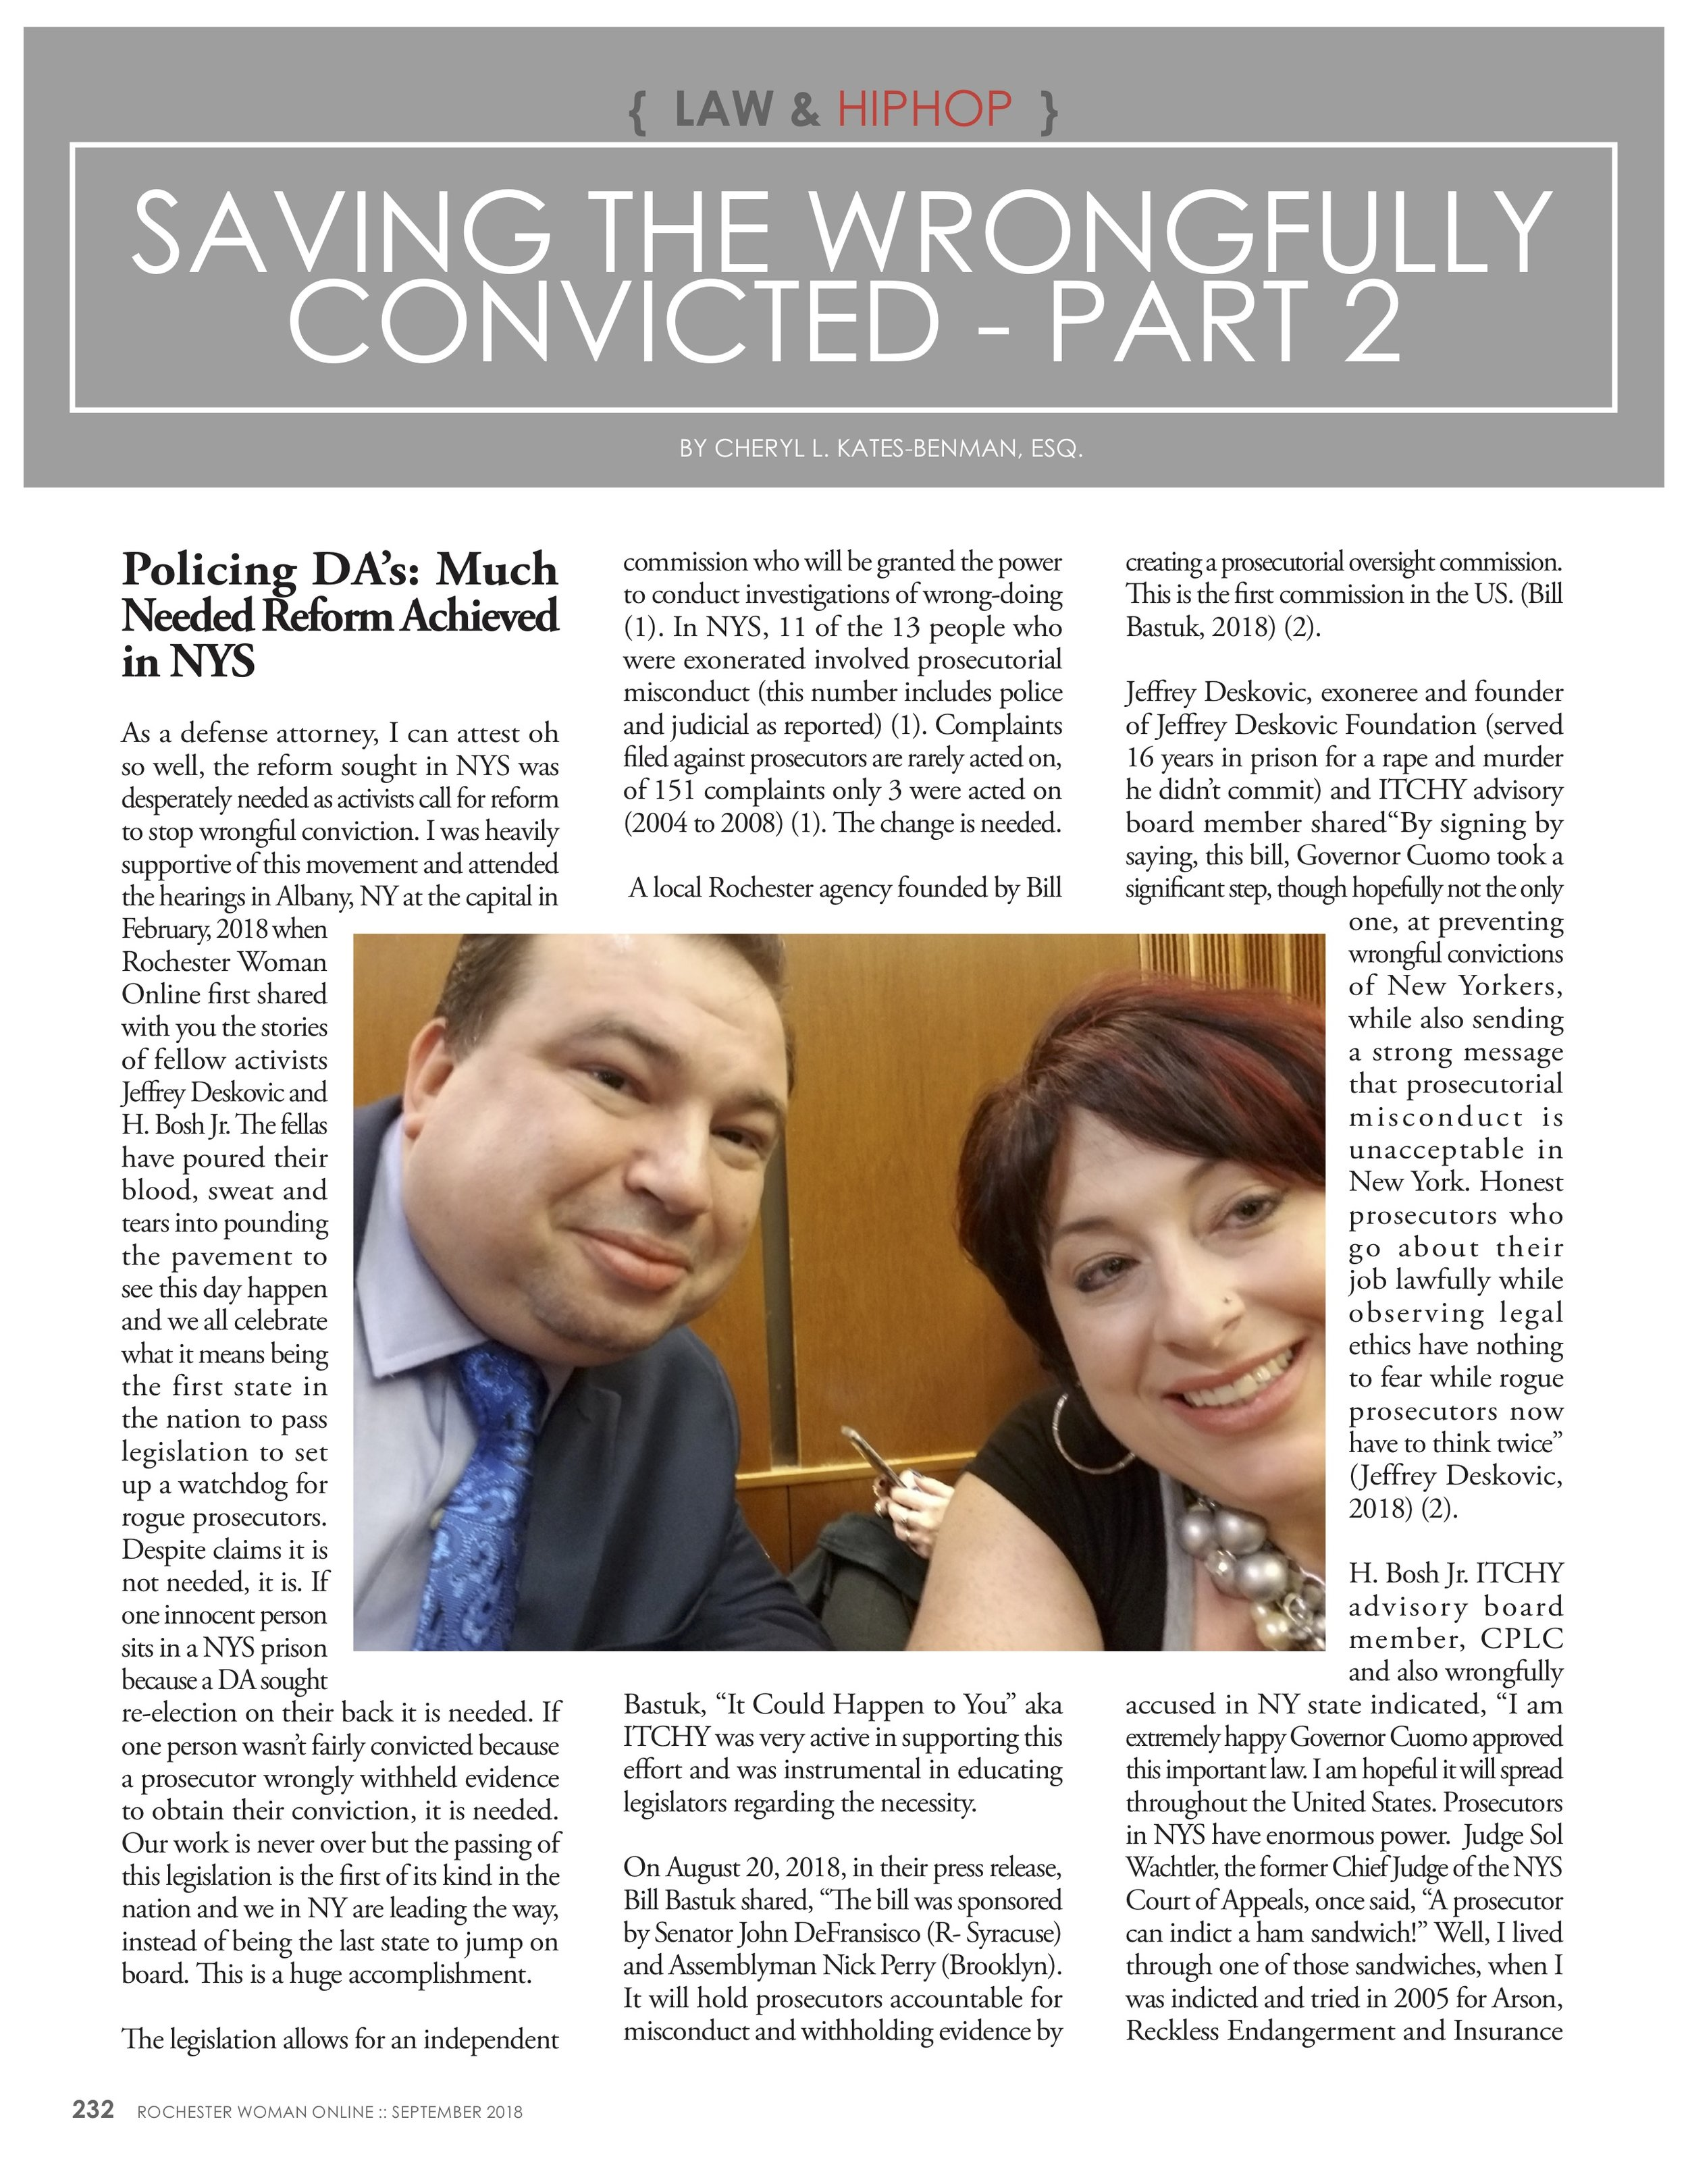 Saving the Wrongfully Convicted - Part 2.jpg